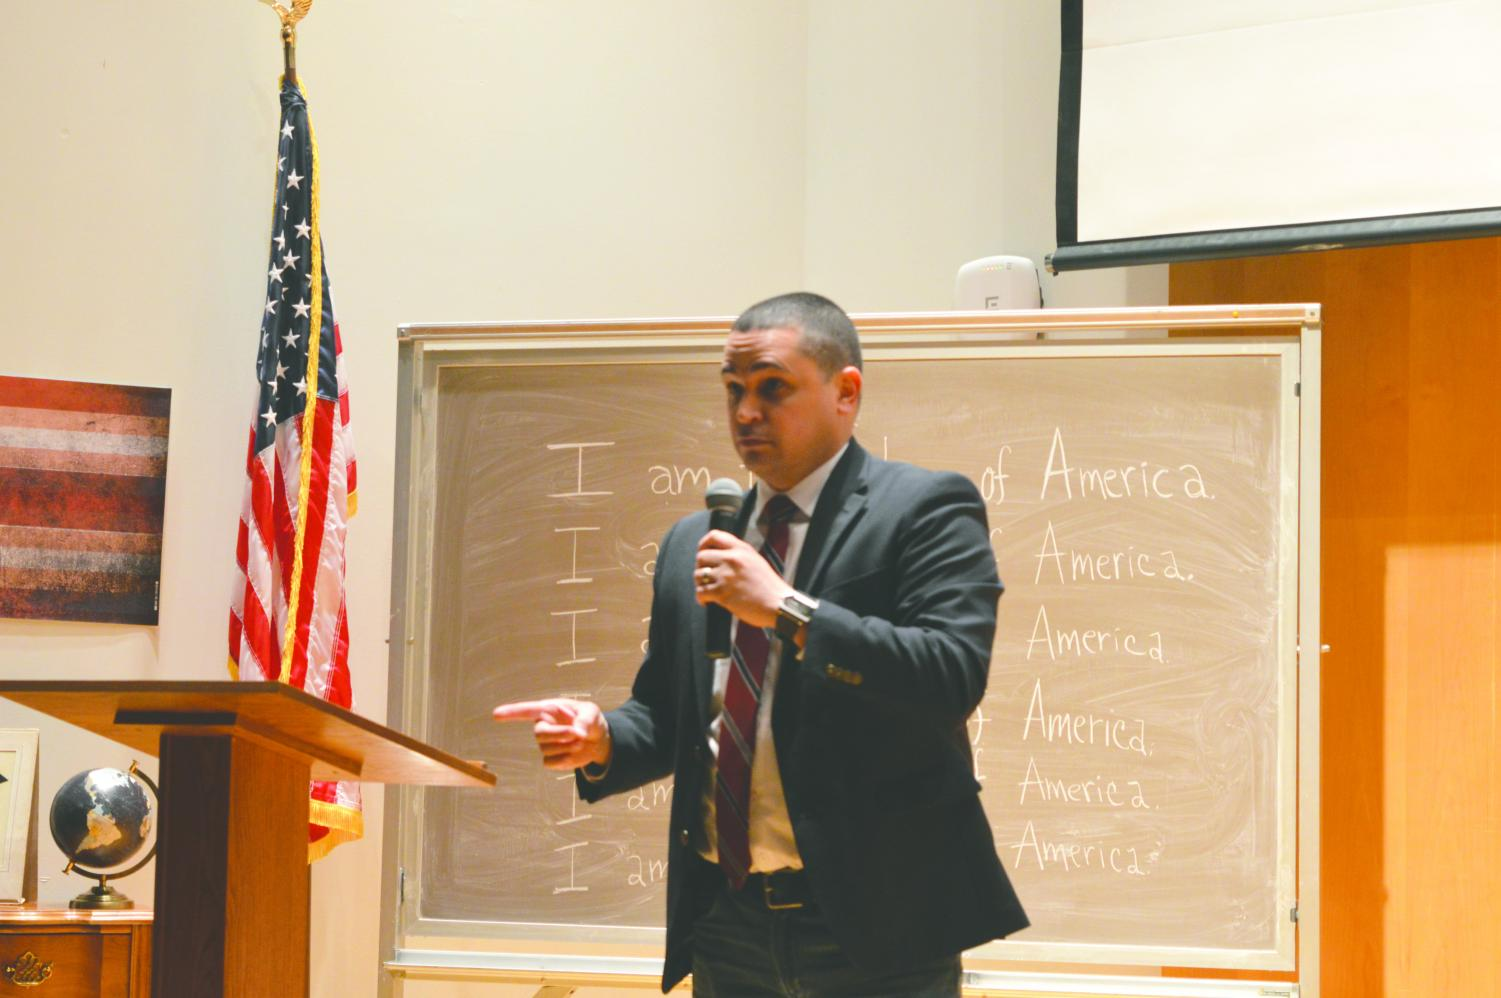 """Dr. Avila spoke in front of a set that featured a chalkboard that said, """"I am the future of America."""" Also on stage were numerous Puerto Rican flags, as well as family photographs."""